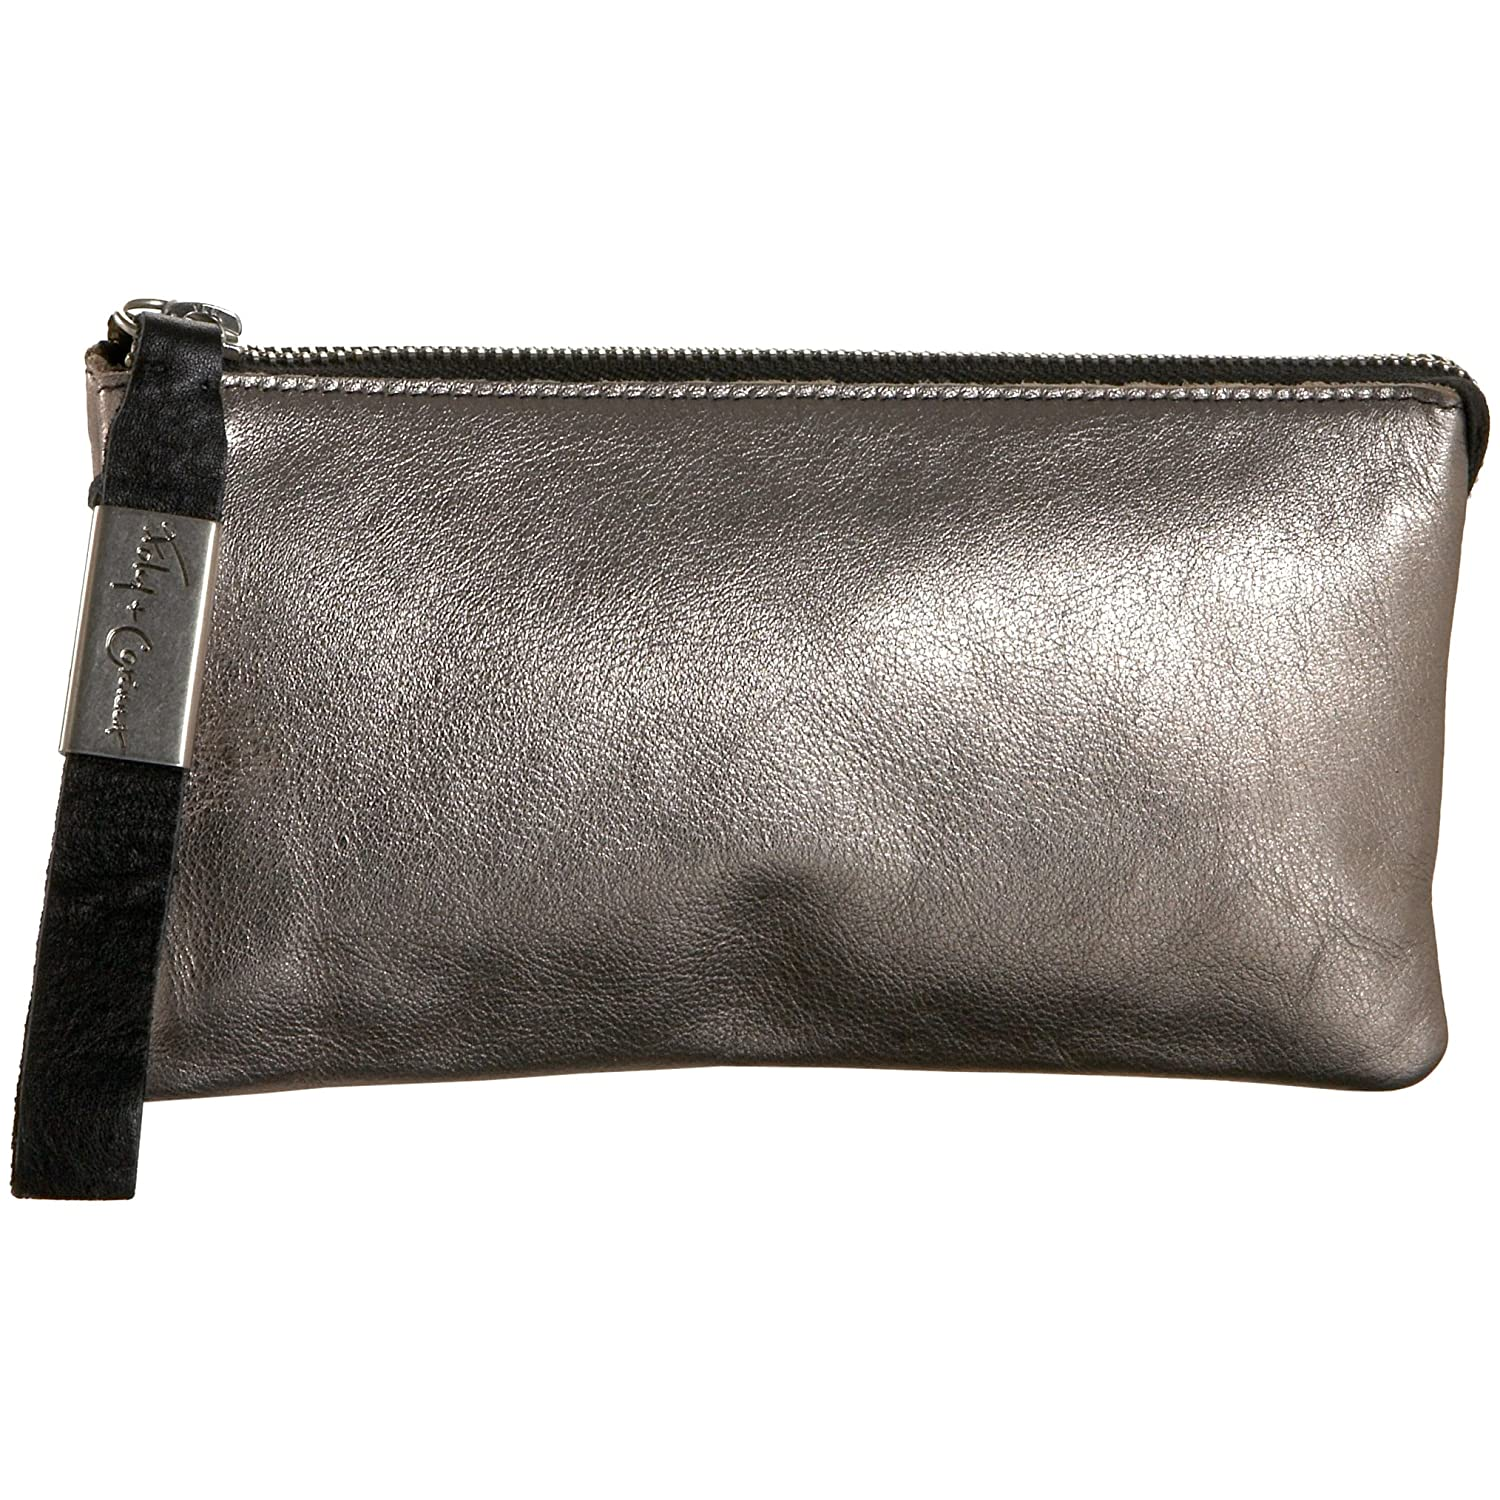 Foley + Corinna - Tycoon Wallet